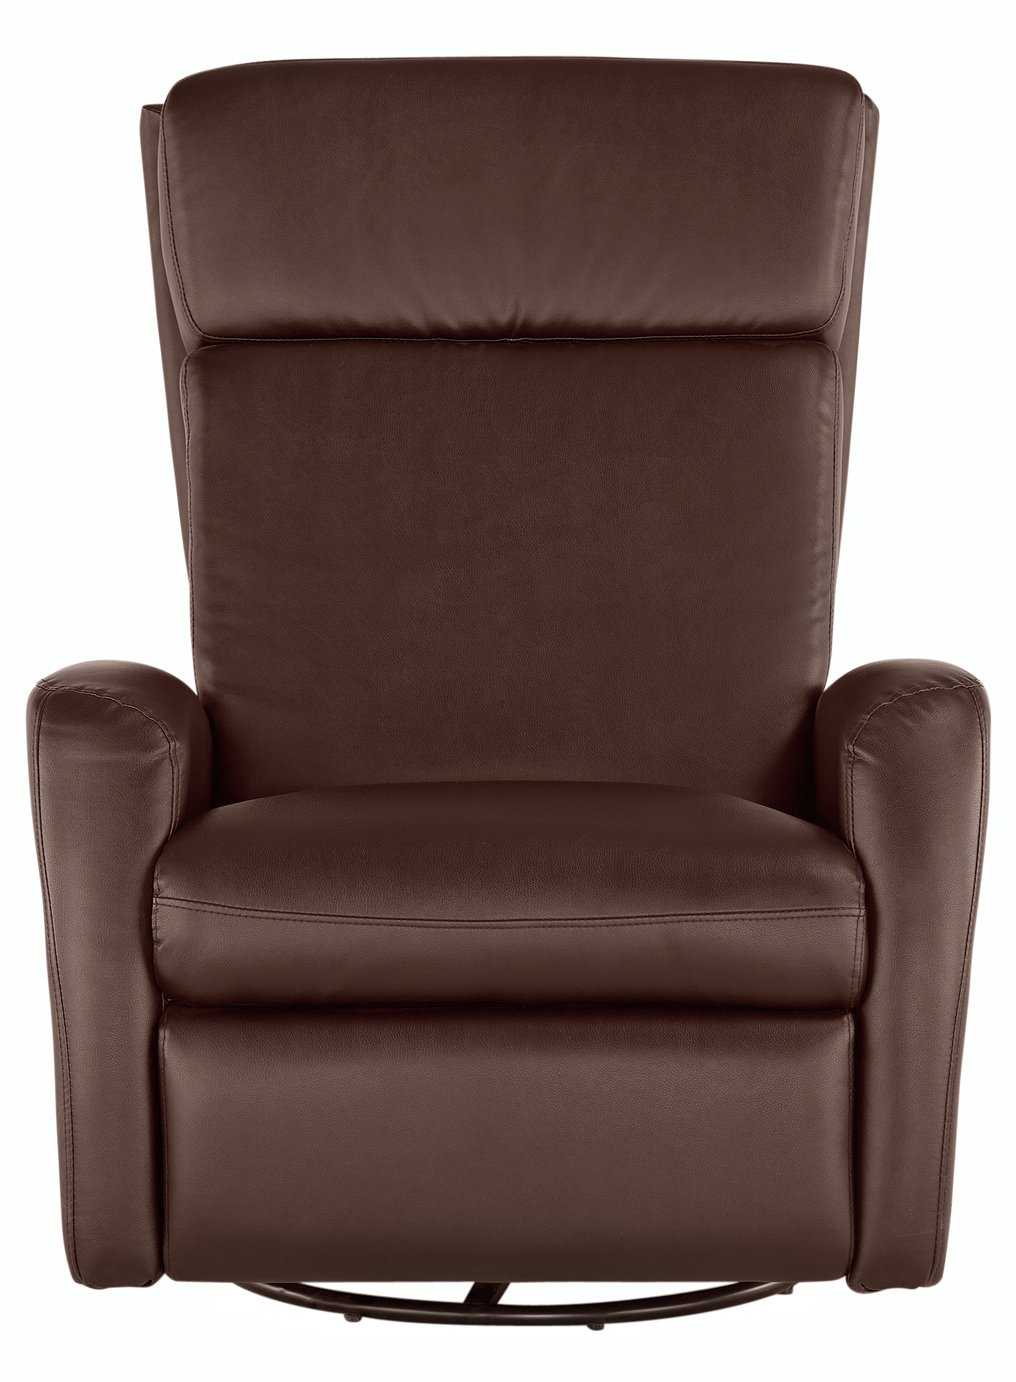 Collection Rock-R-Round Leather Eff Recliner Chair - Choc  sc 1 st  Argos & Buy Collection Rock-R-Round Leather Eff Recliner Chair - Choc at ... islam-shia.org